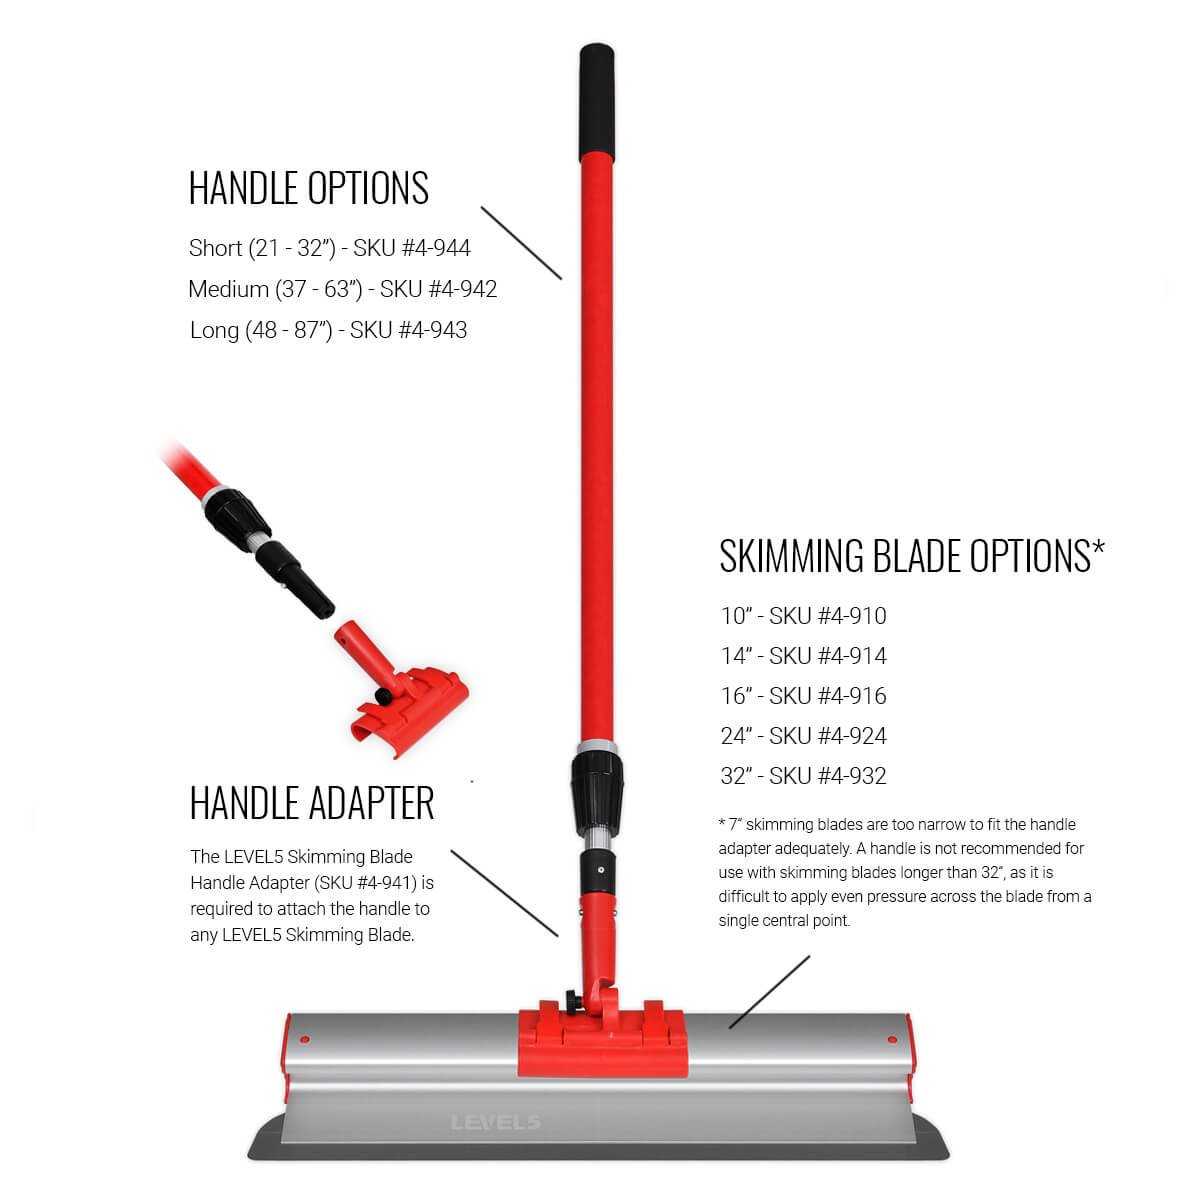 Use the adapter to attach a range of extendable handles to any LEVEL5 Skimming Blade.